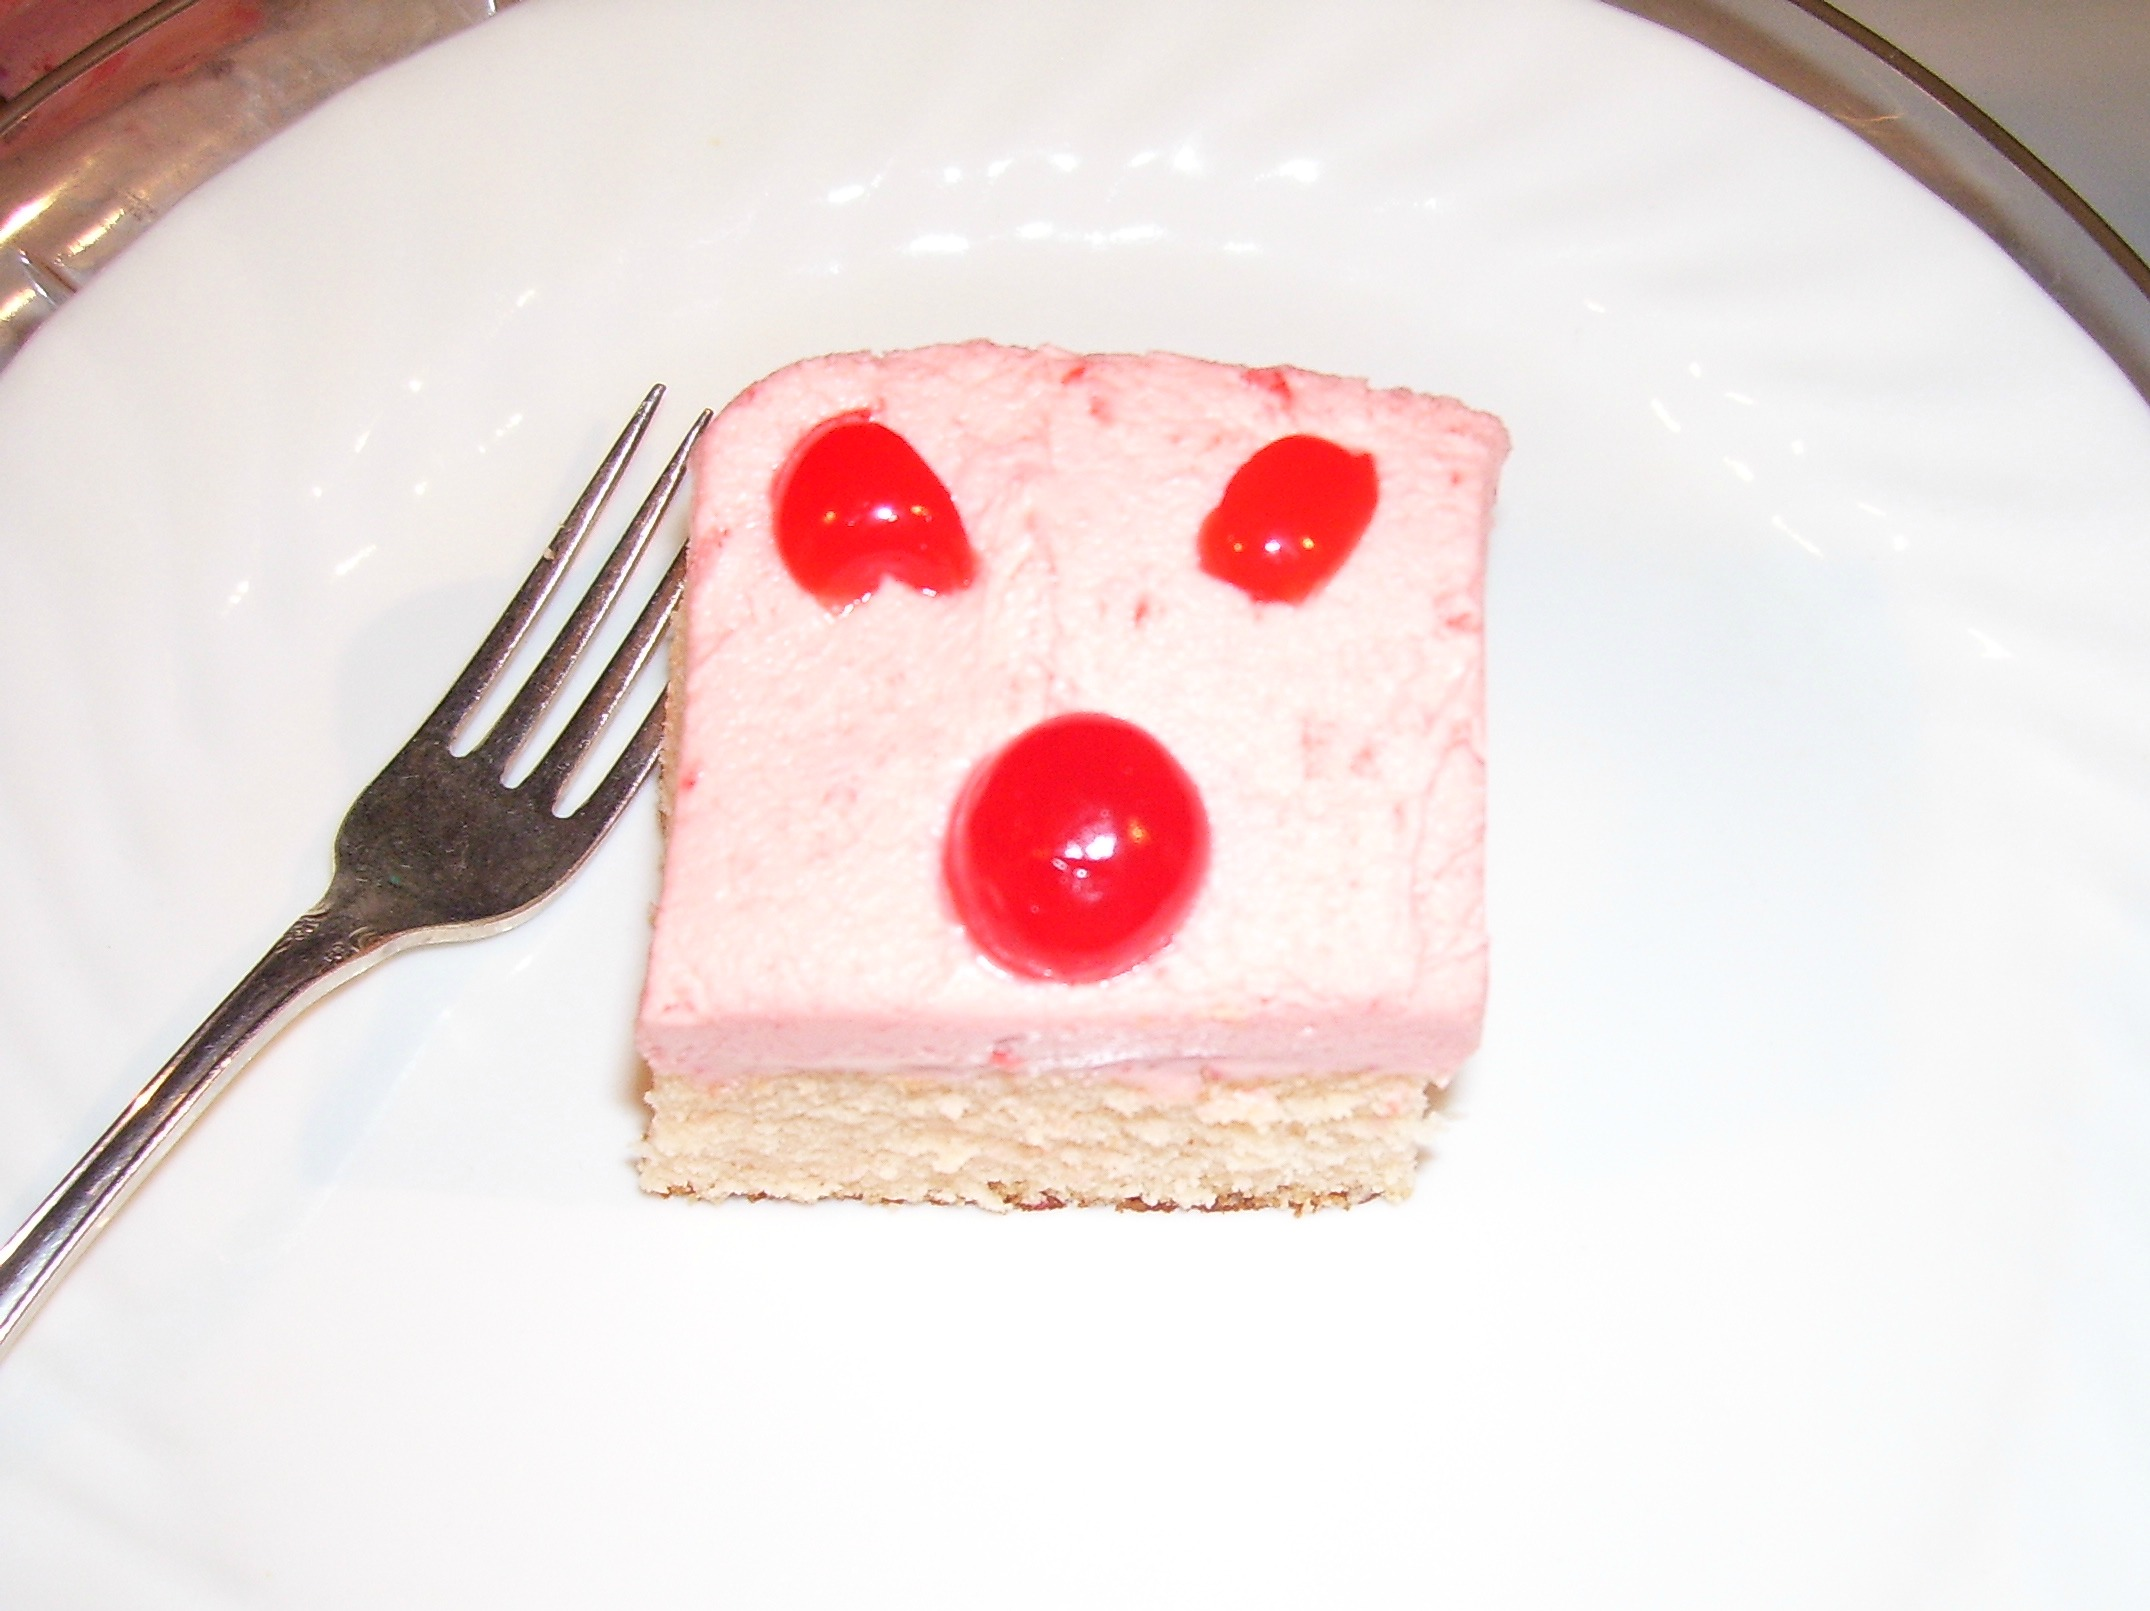 Maraschino Cherry Cake with Cream Cheese Frosting square.